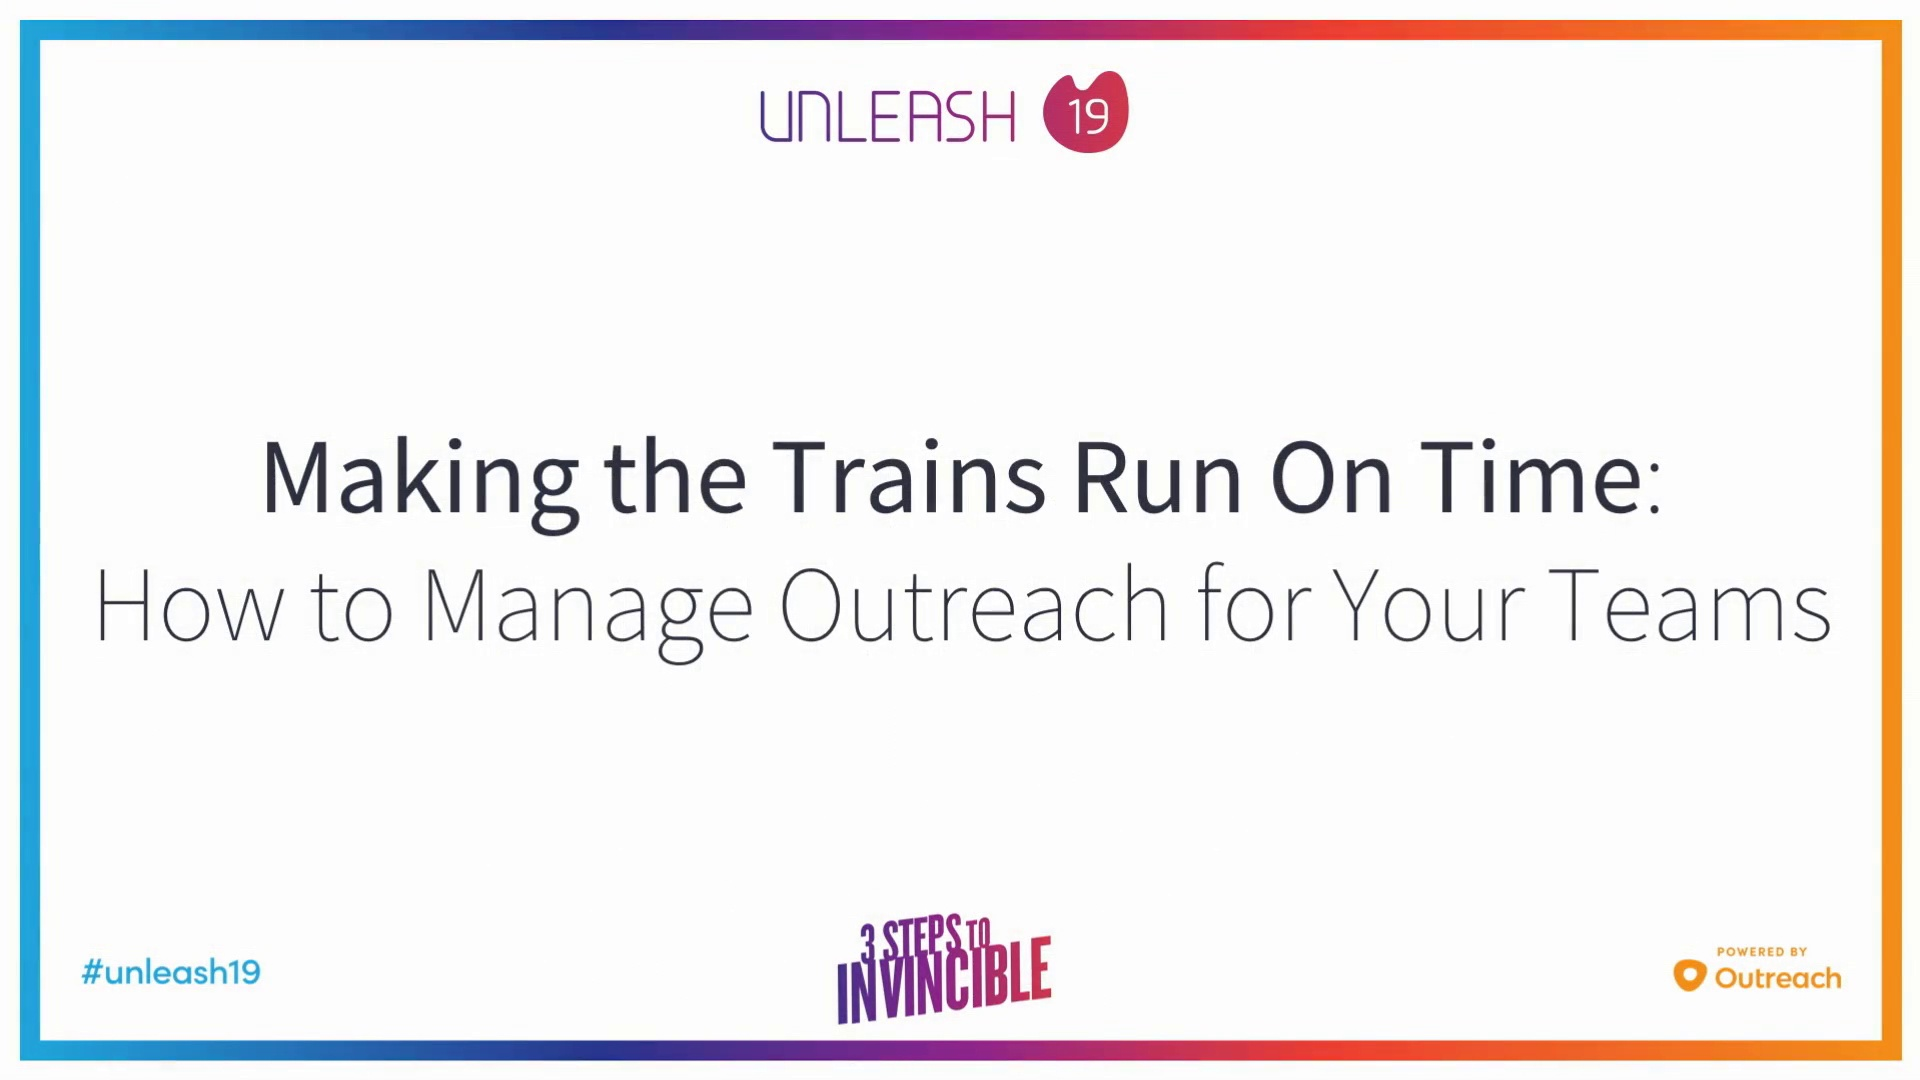 Making the Trains Run On Time, How to Manage Outreach for Your Teams - Jerry Pharr, Amanda Lim, Emily Blau